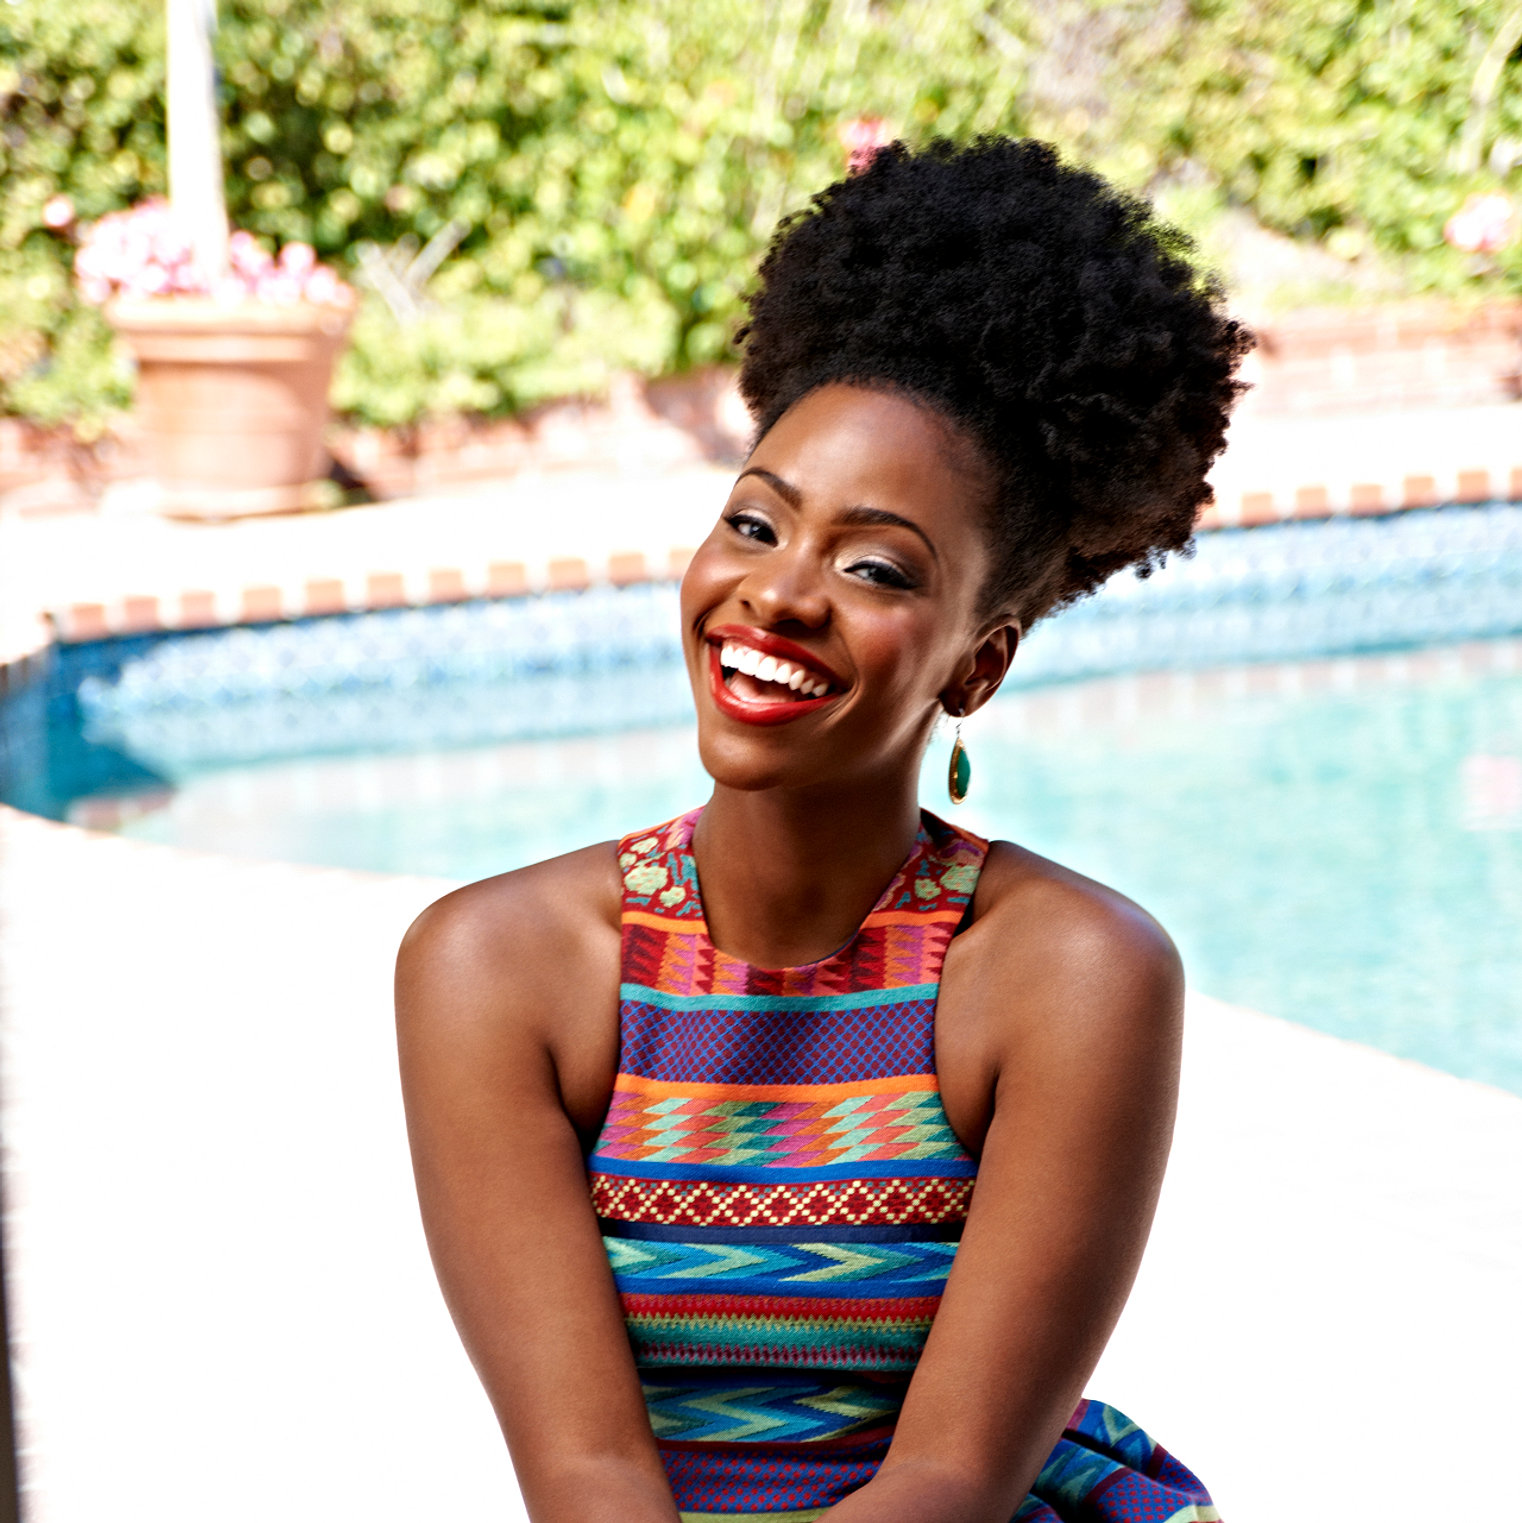 teyonah parris hairteyonah parris instagram, teyonah parris movies and tv shows, teyonah parris, teyonah parris age, teyonah parris bio, teyonah parris biography, teyonah parris chiraq, teyonah parris date of birth, teyonah parris hair, teyonah parris engagement, teyonah parris natural hair, teyonah parris birthdate, teyonah parris husband, teyonah parris hairstyles, teyonah parris boyfriend, teyonah parris body, teyonah parris married, teyonah parris hair regimen, teyonah parris birthday, teyonah parris booty